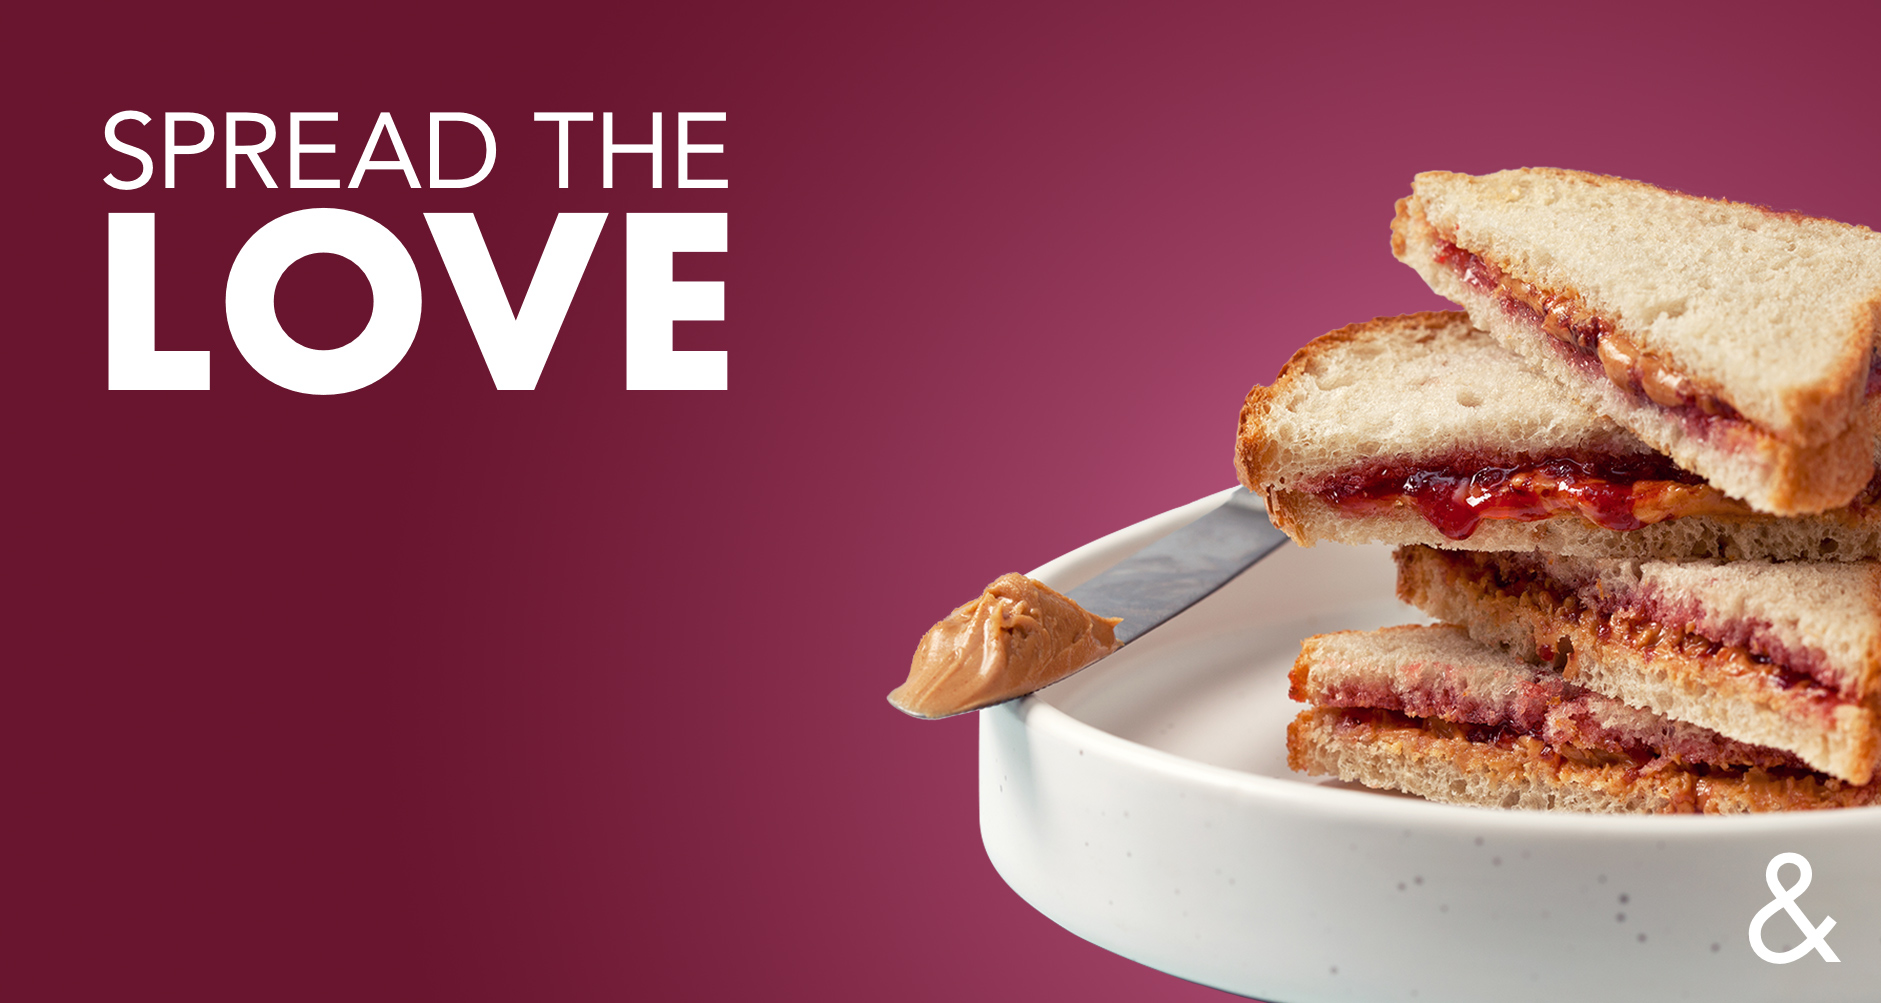 Smart & Final: Spread the love (like peanut butter and jelly).